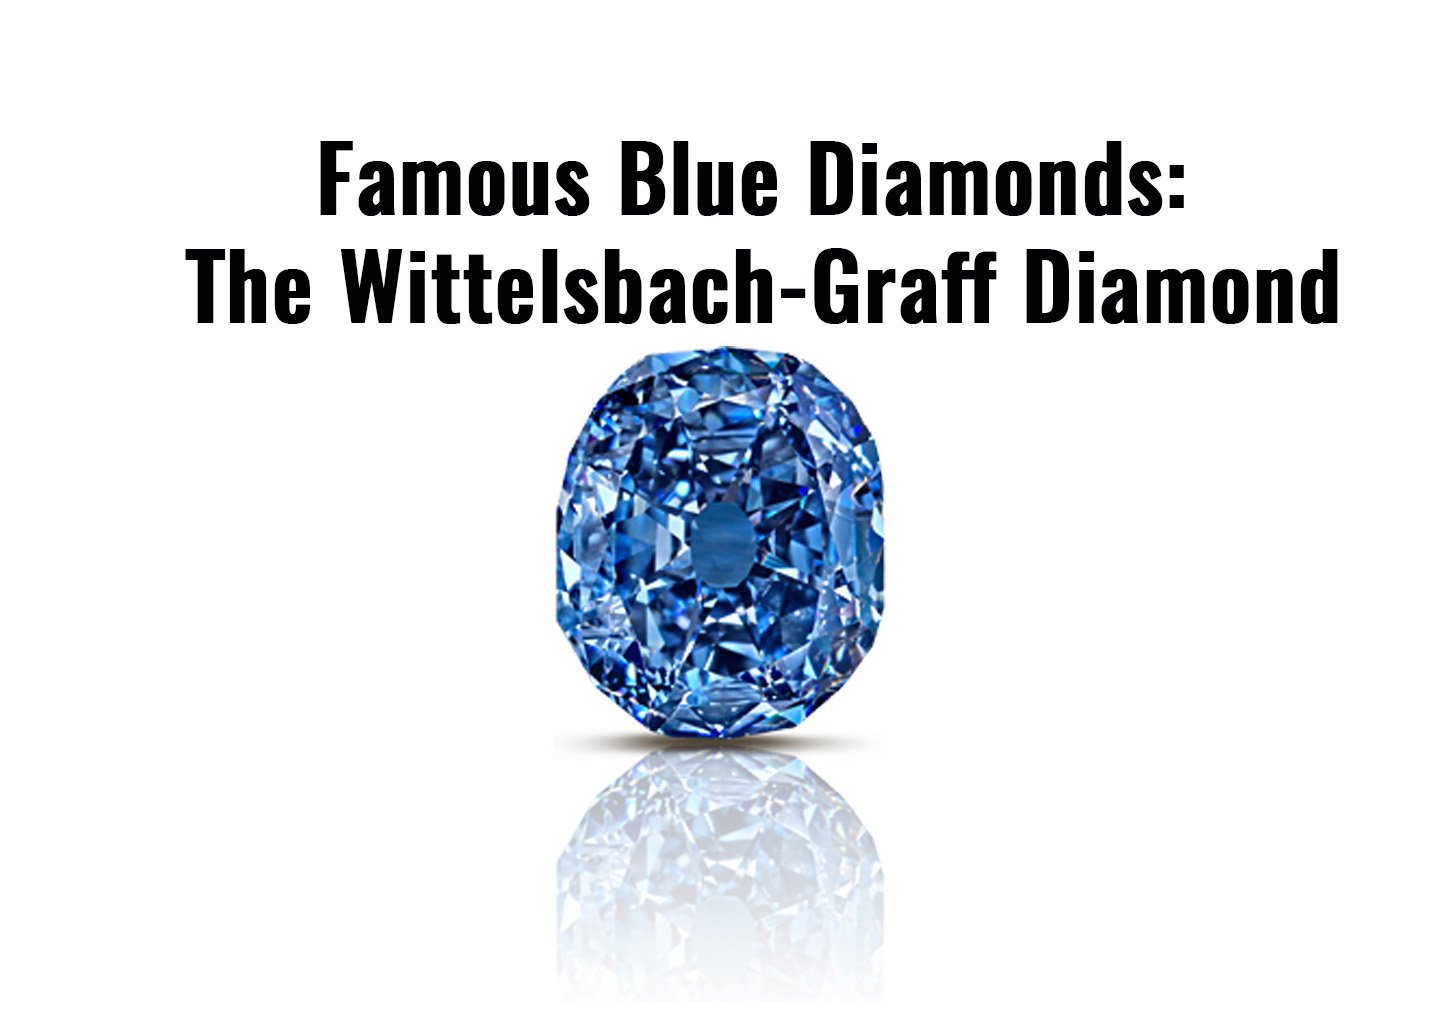 blue-diamonds-wittelsbach-graff.jpg